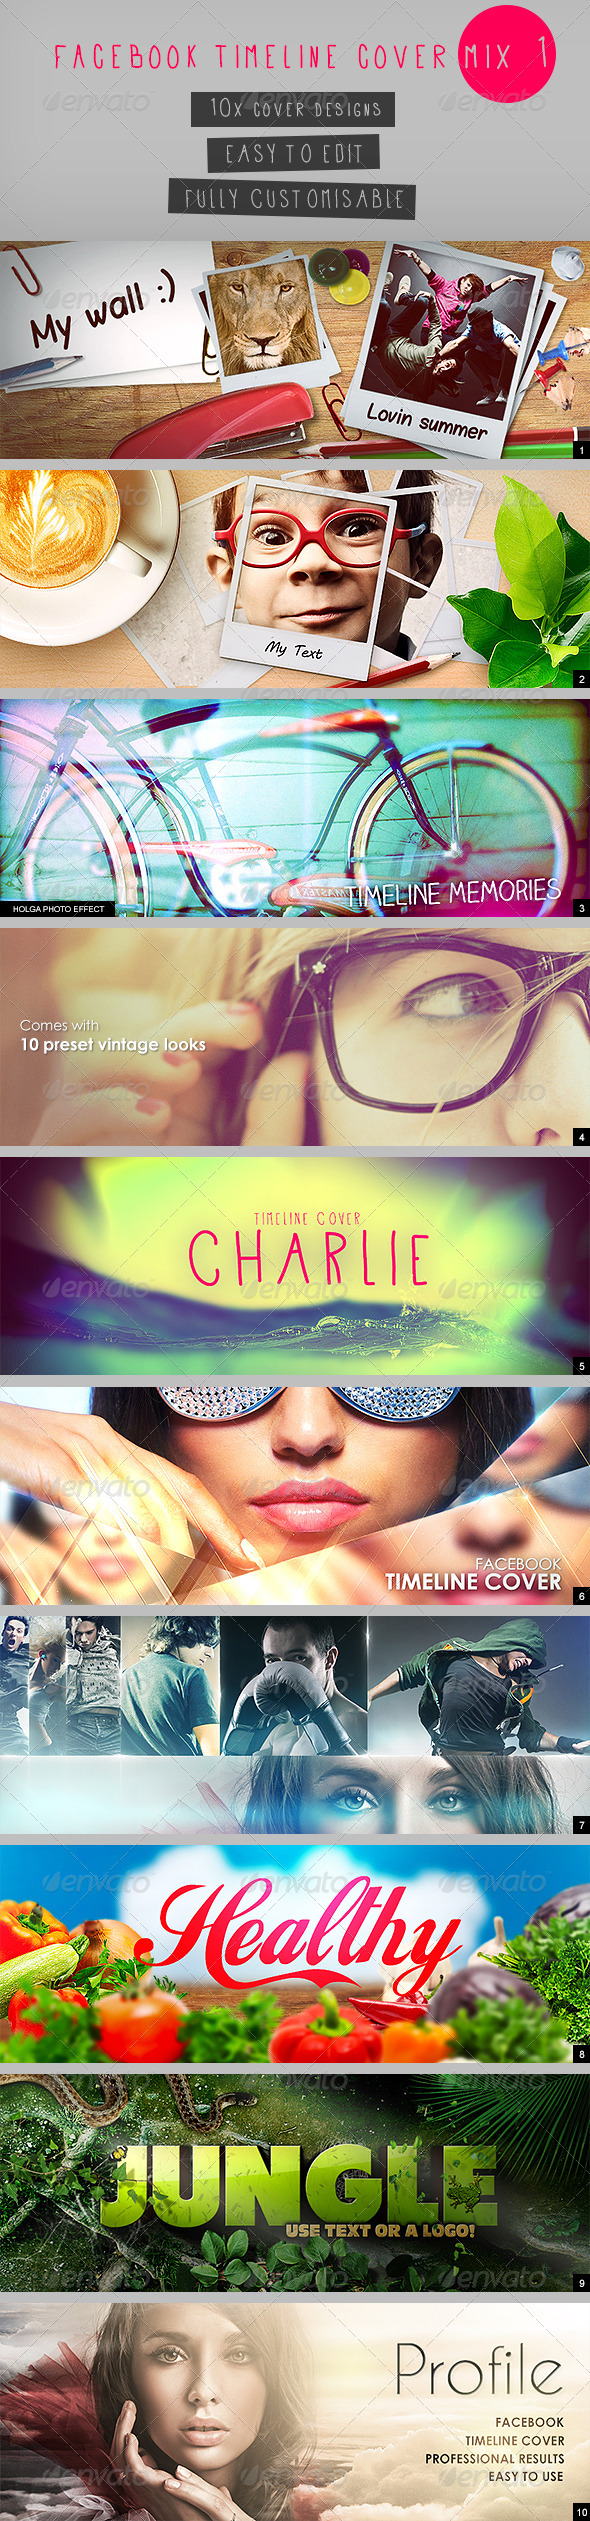 Facebook Timeline Cover Mix 1 - Facebook Timeline Covers Social Media